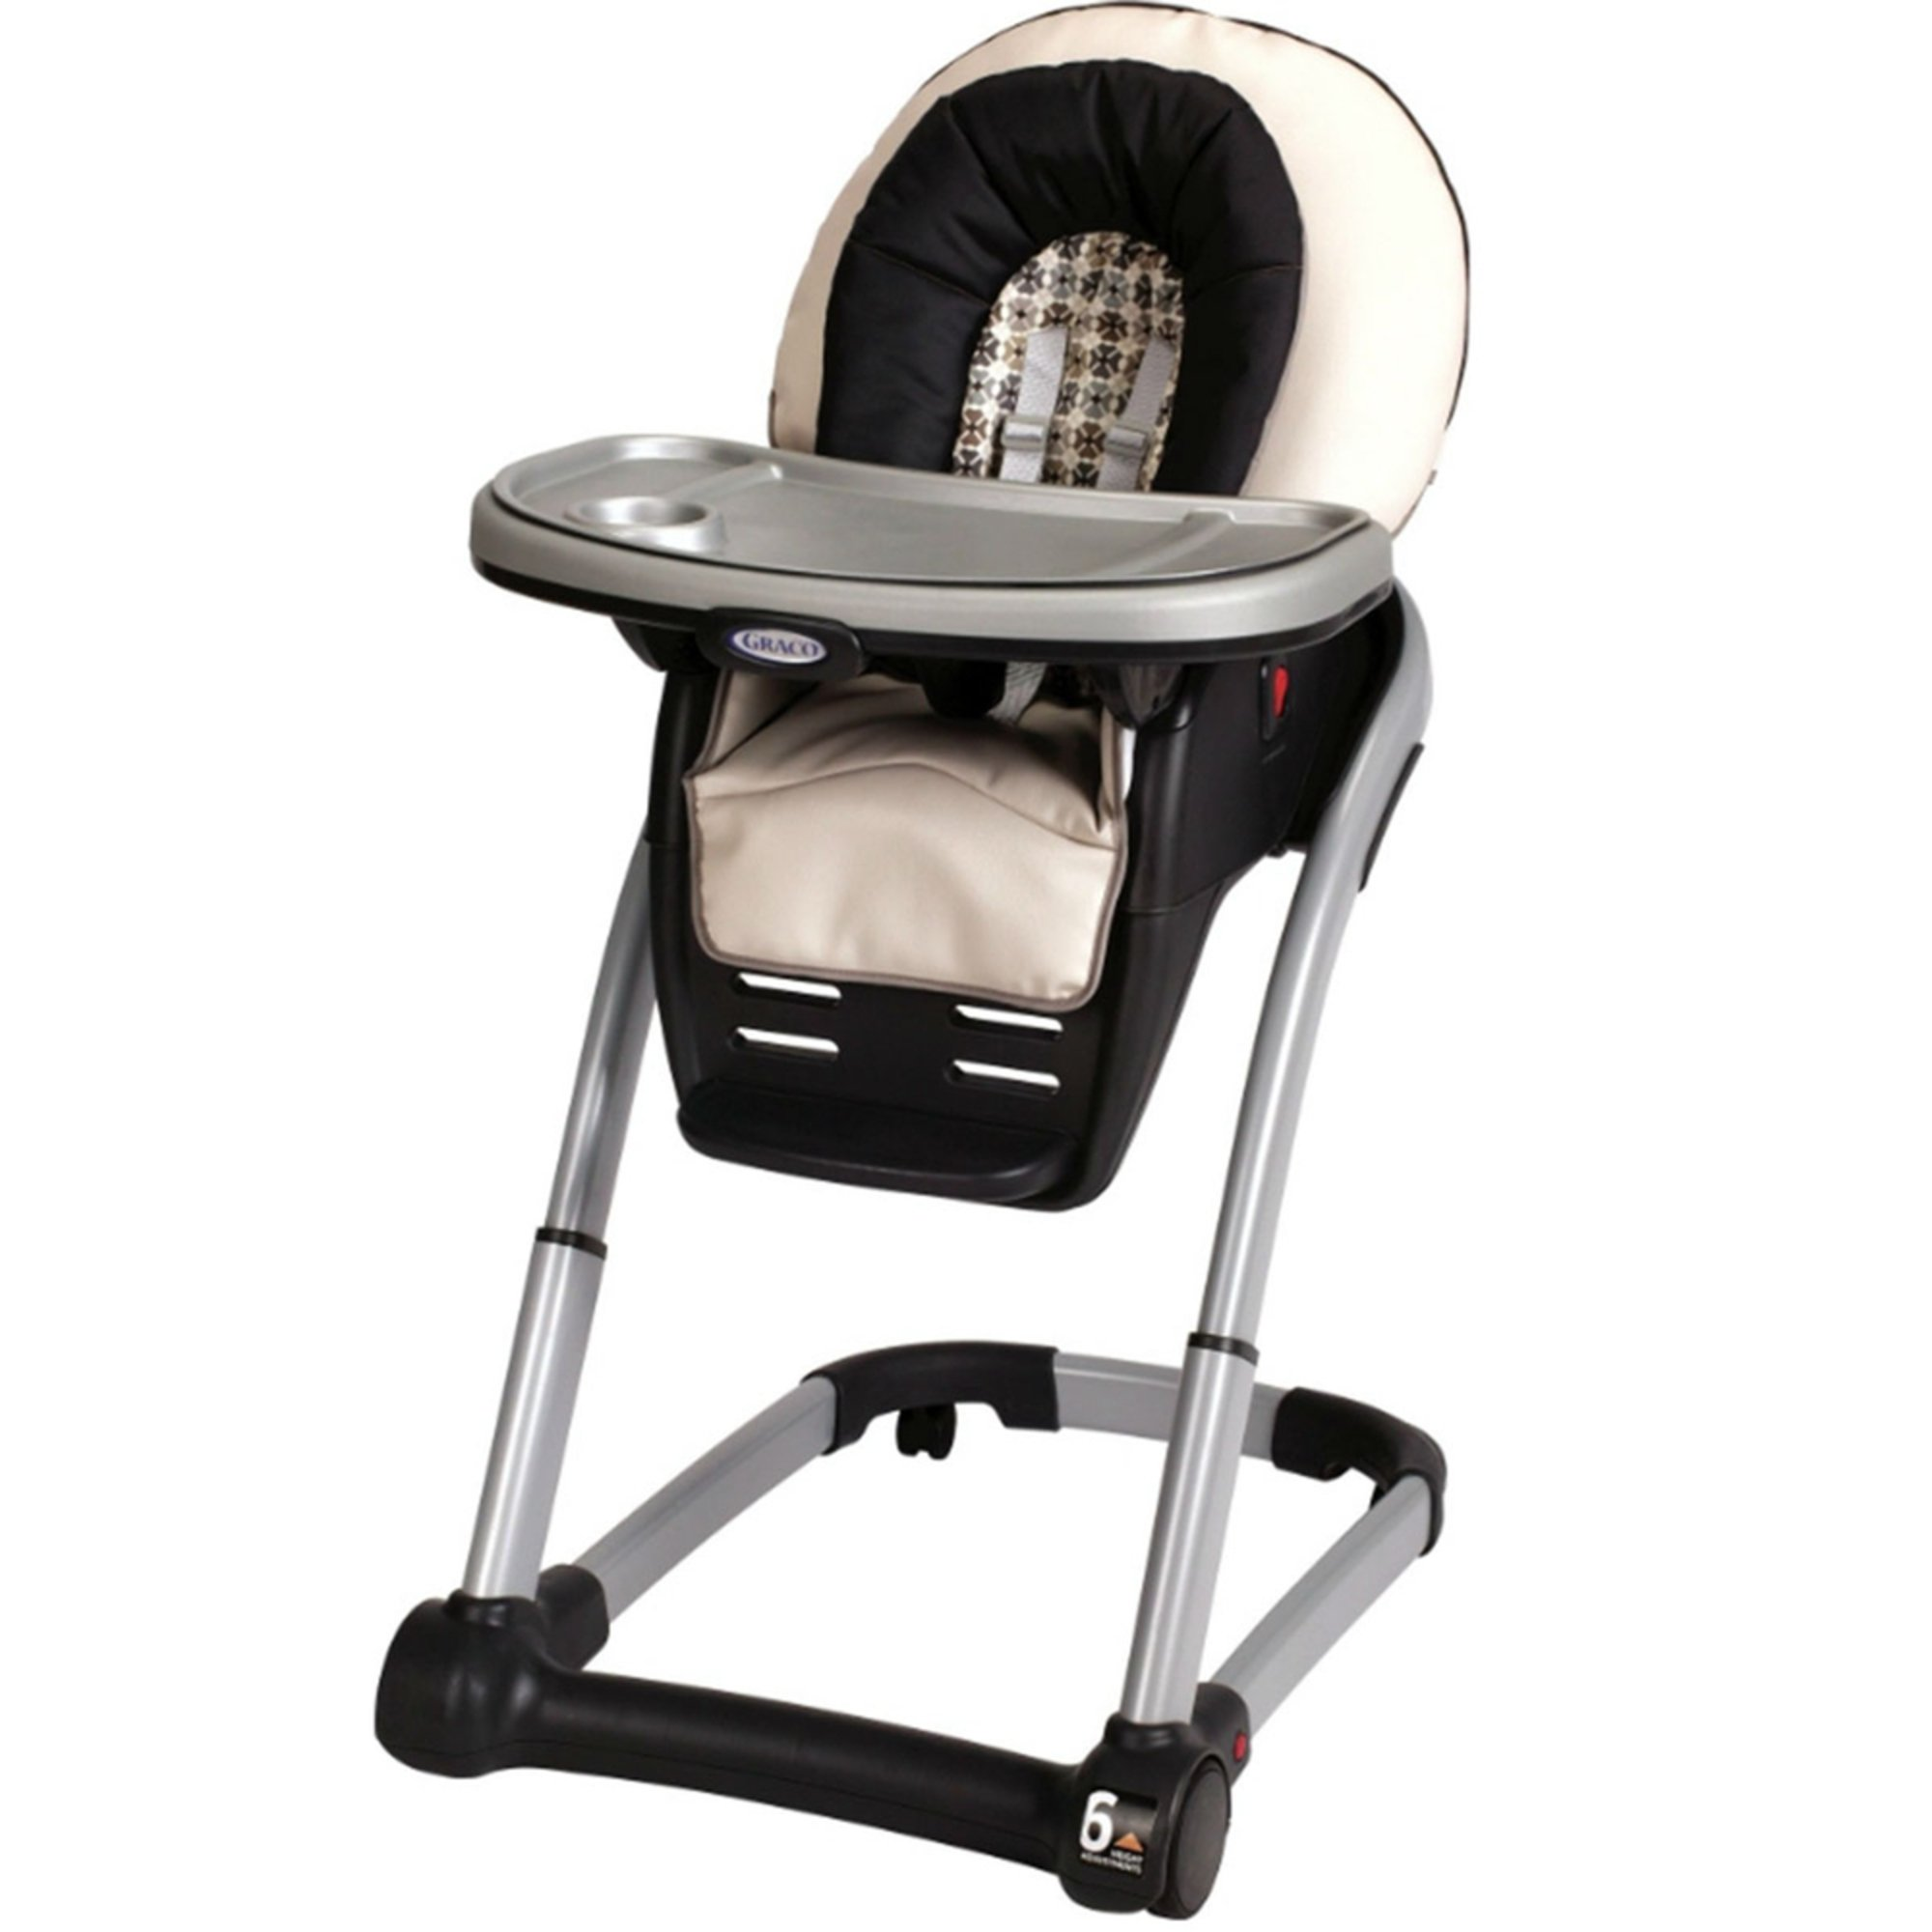 Space saver high chair boy - Graco Blossom 4 In 1 Highchair Vance